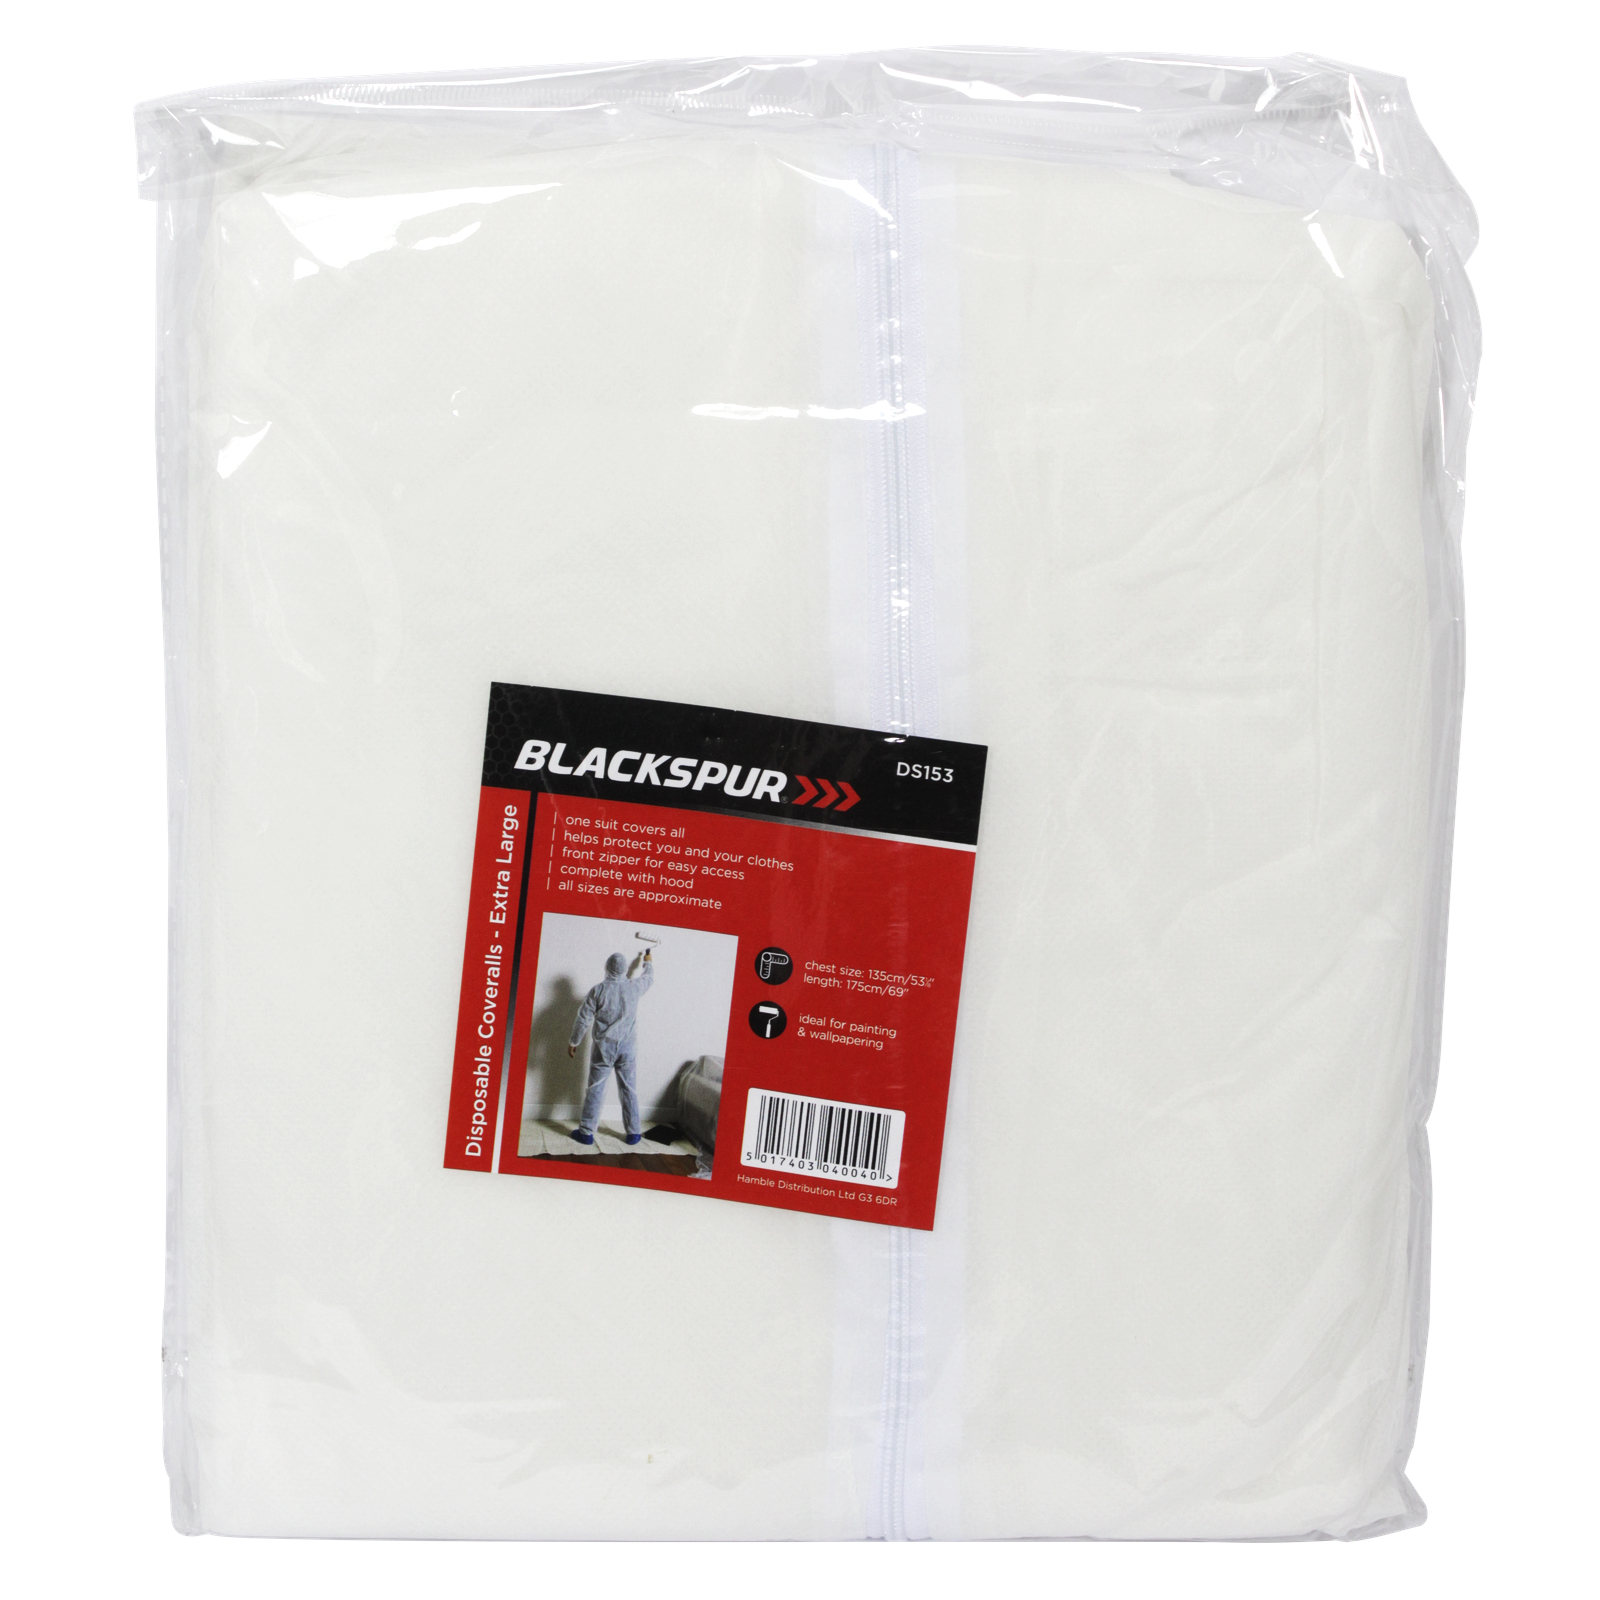 BLACKSPUR DISPOSABLE COVERALL